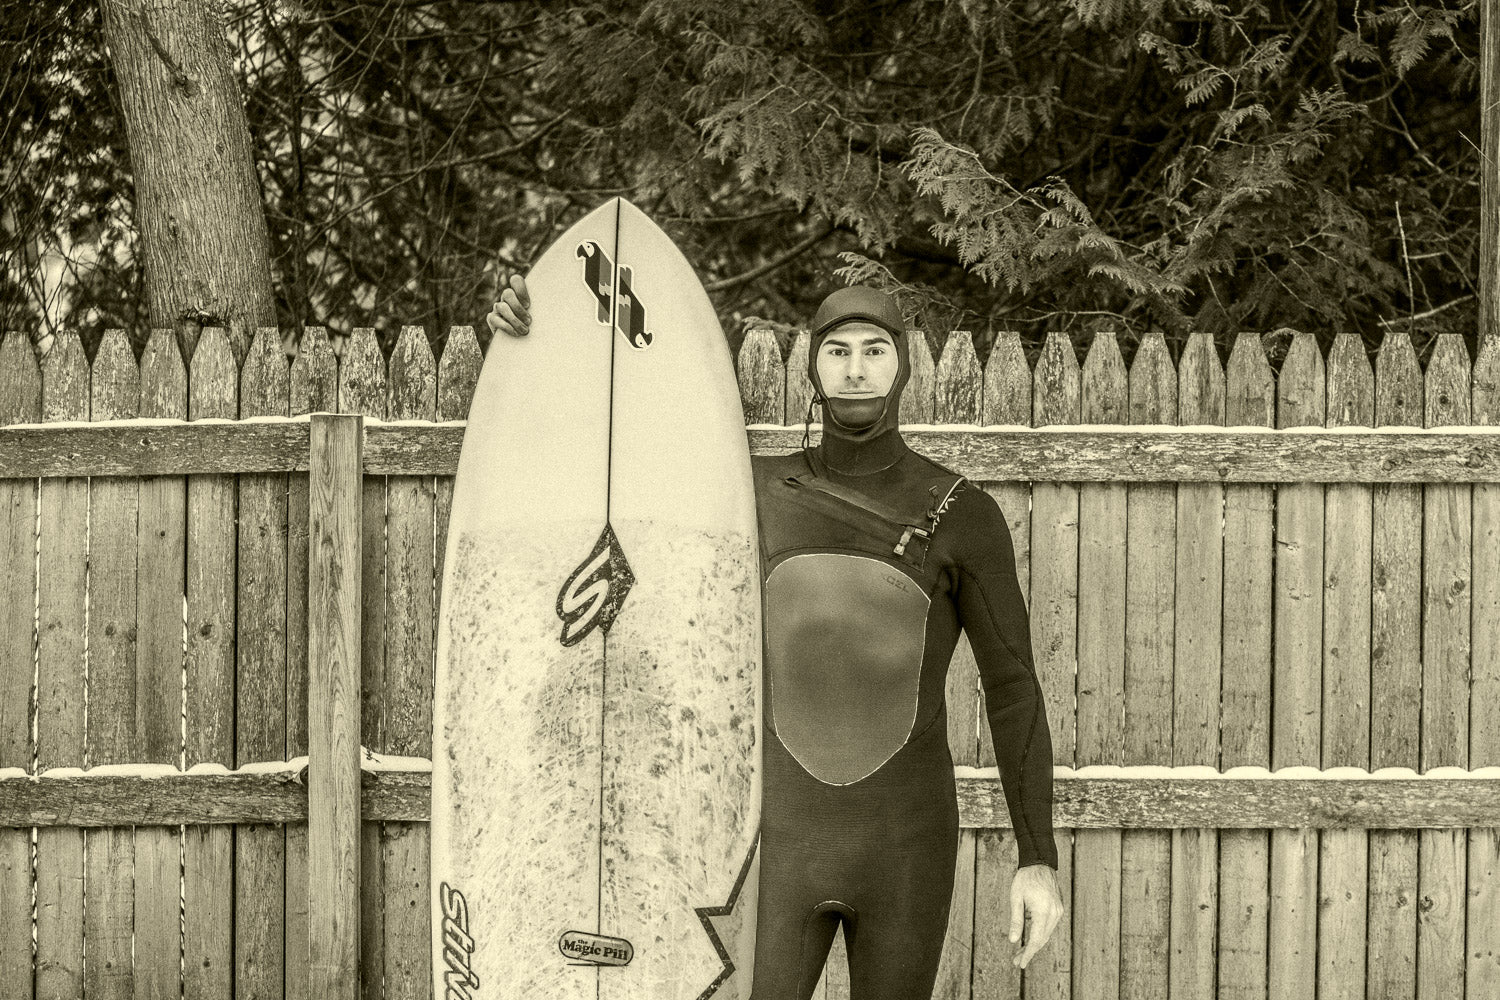 Surfer stands in hooded wetsuit next to surfboard. Behind runs an old fence with a dusting of snow.